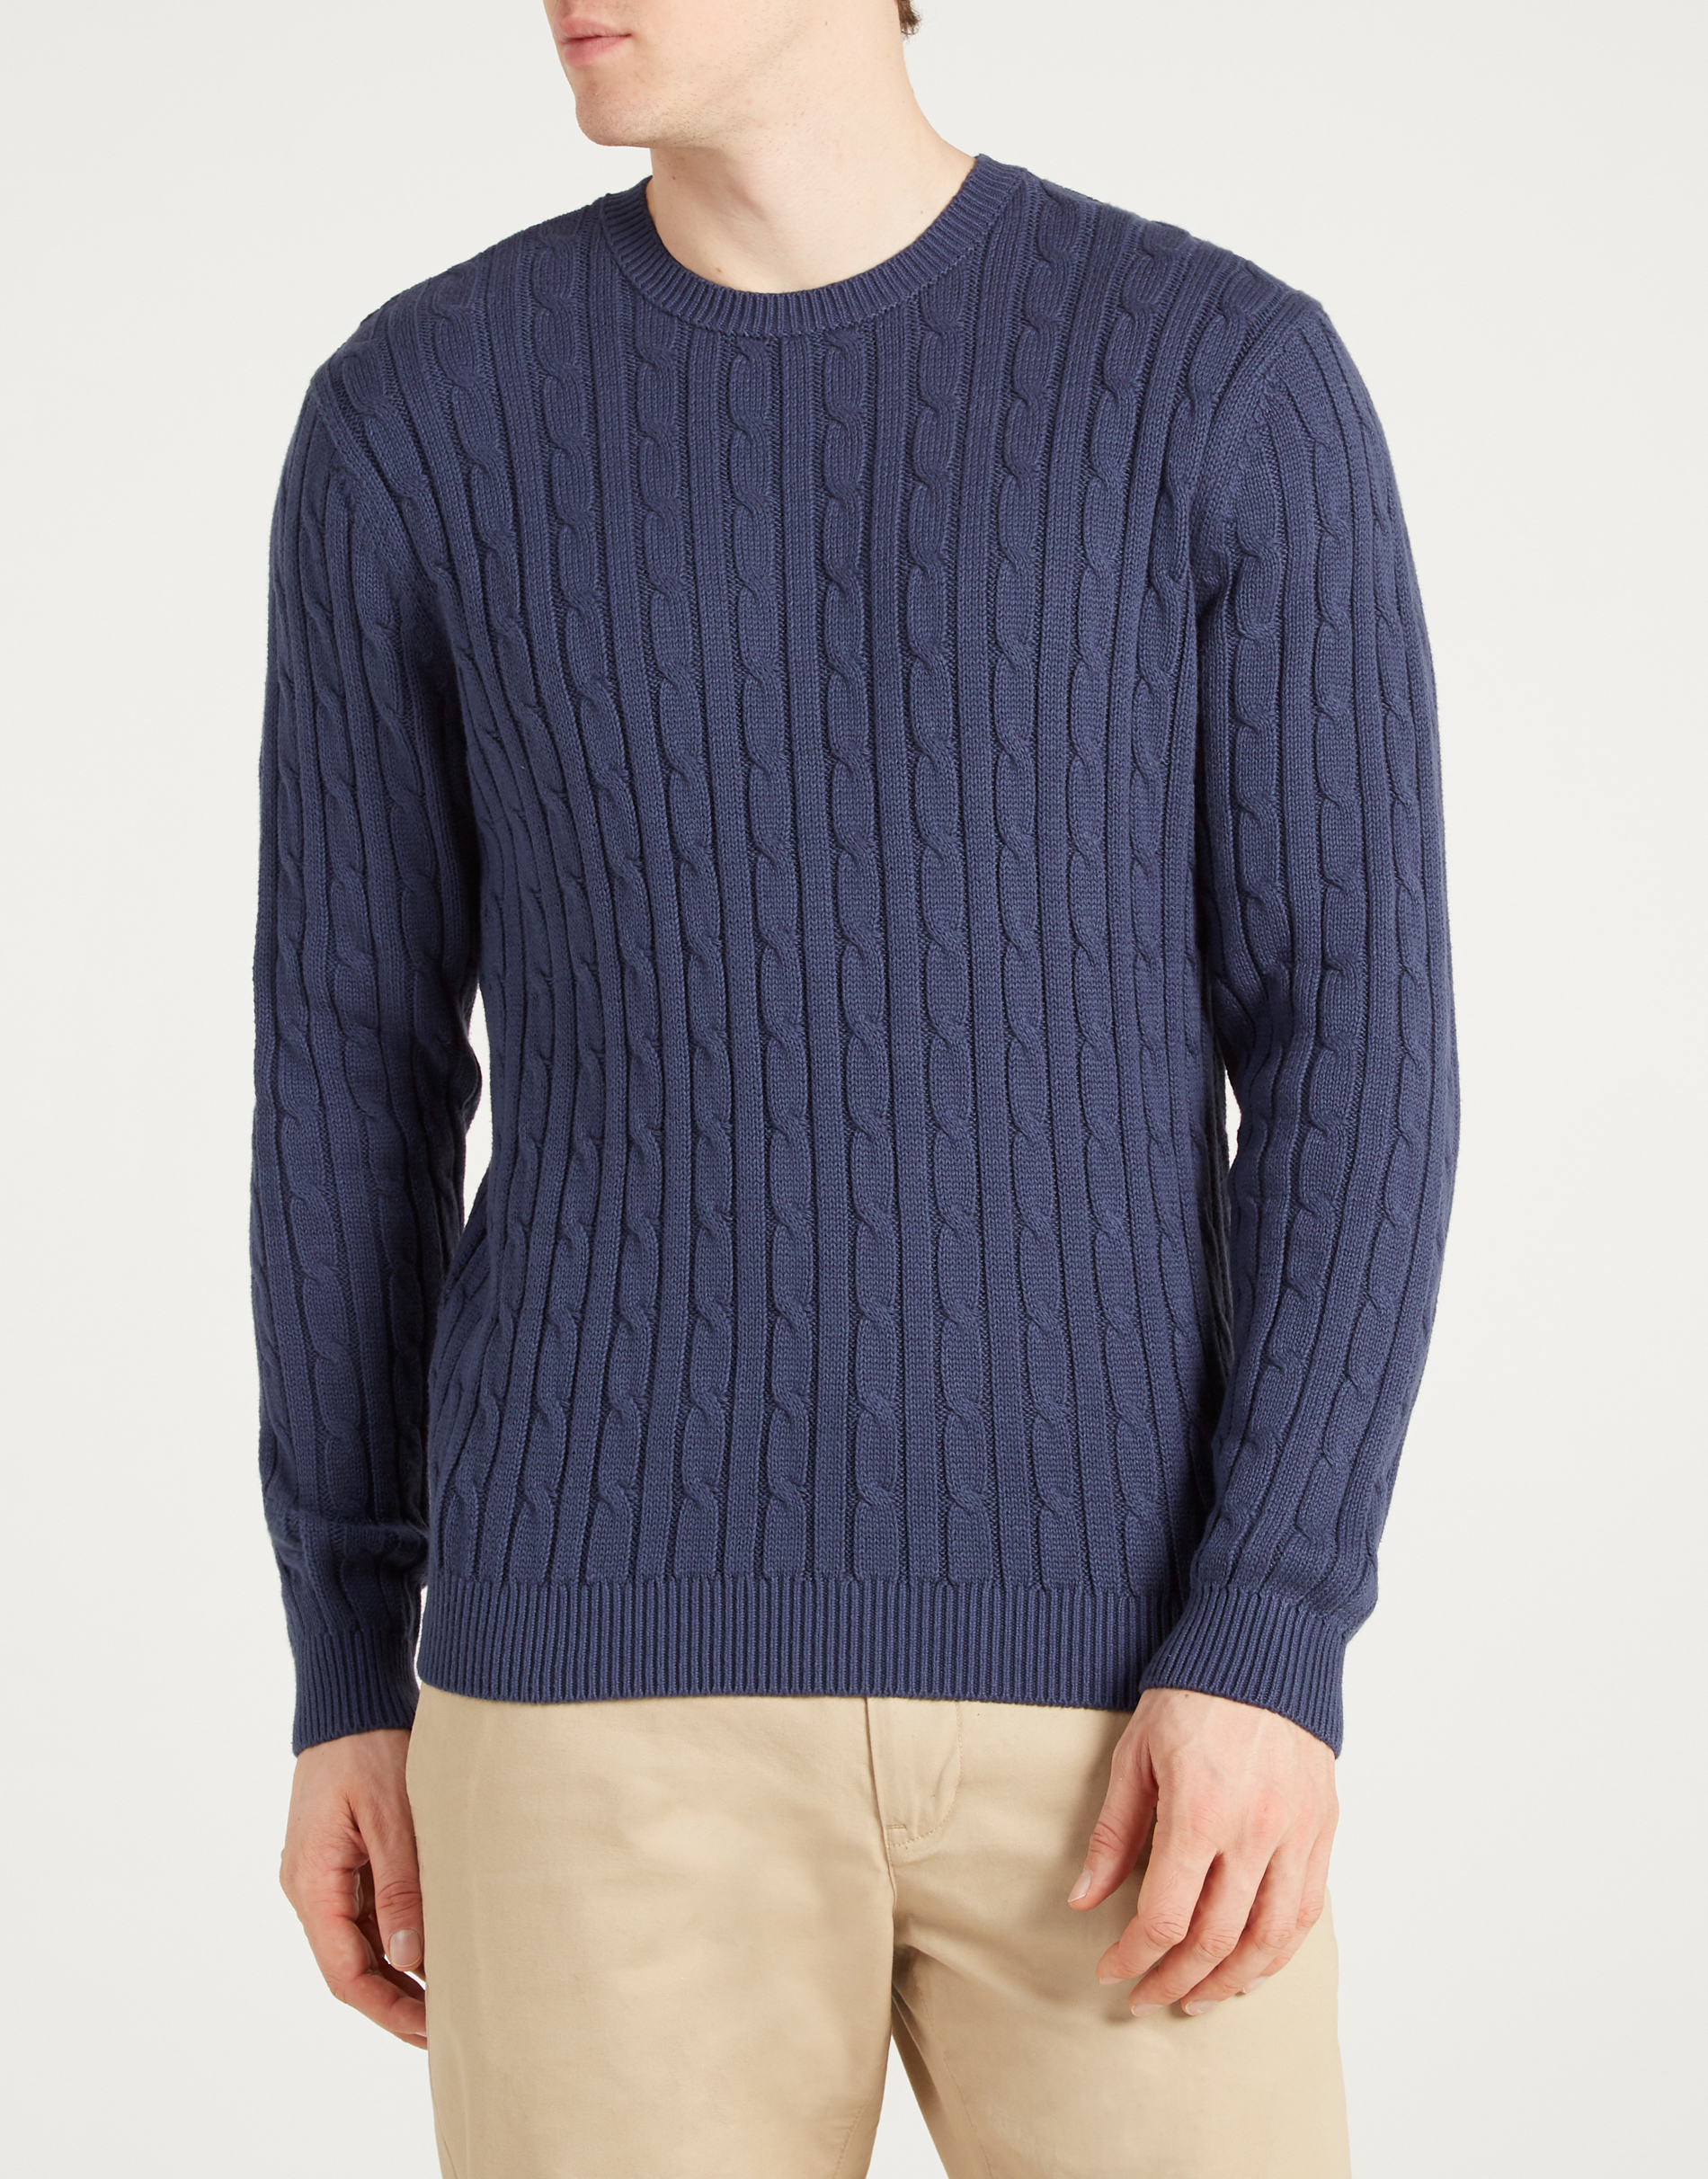 MVP FRENCH NAVY Hainton Cotton Cable Knit Jumper